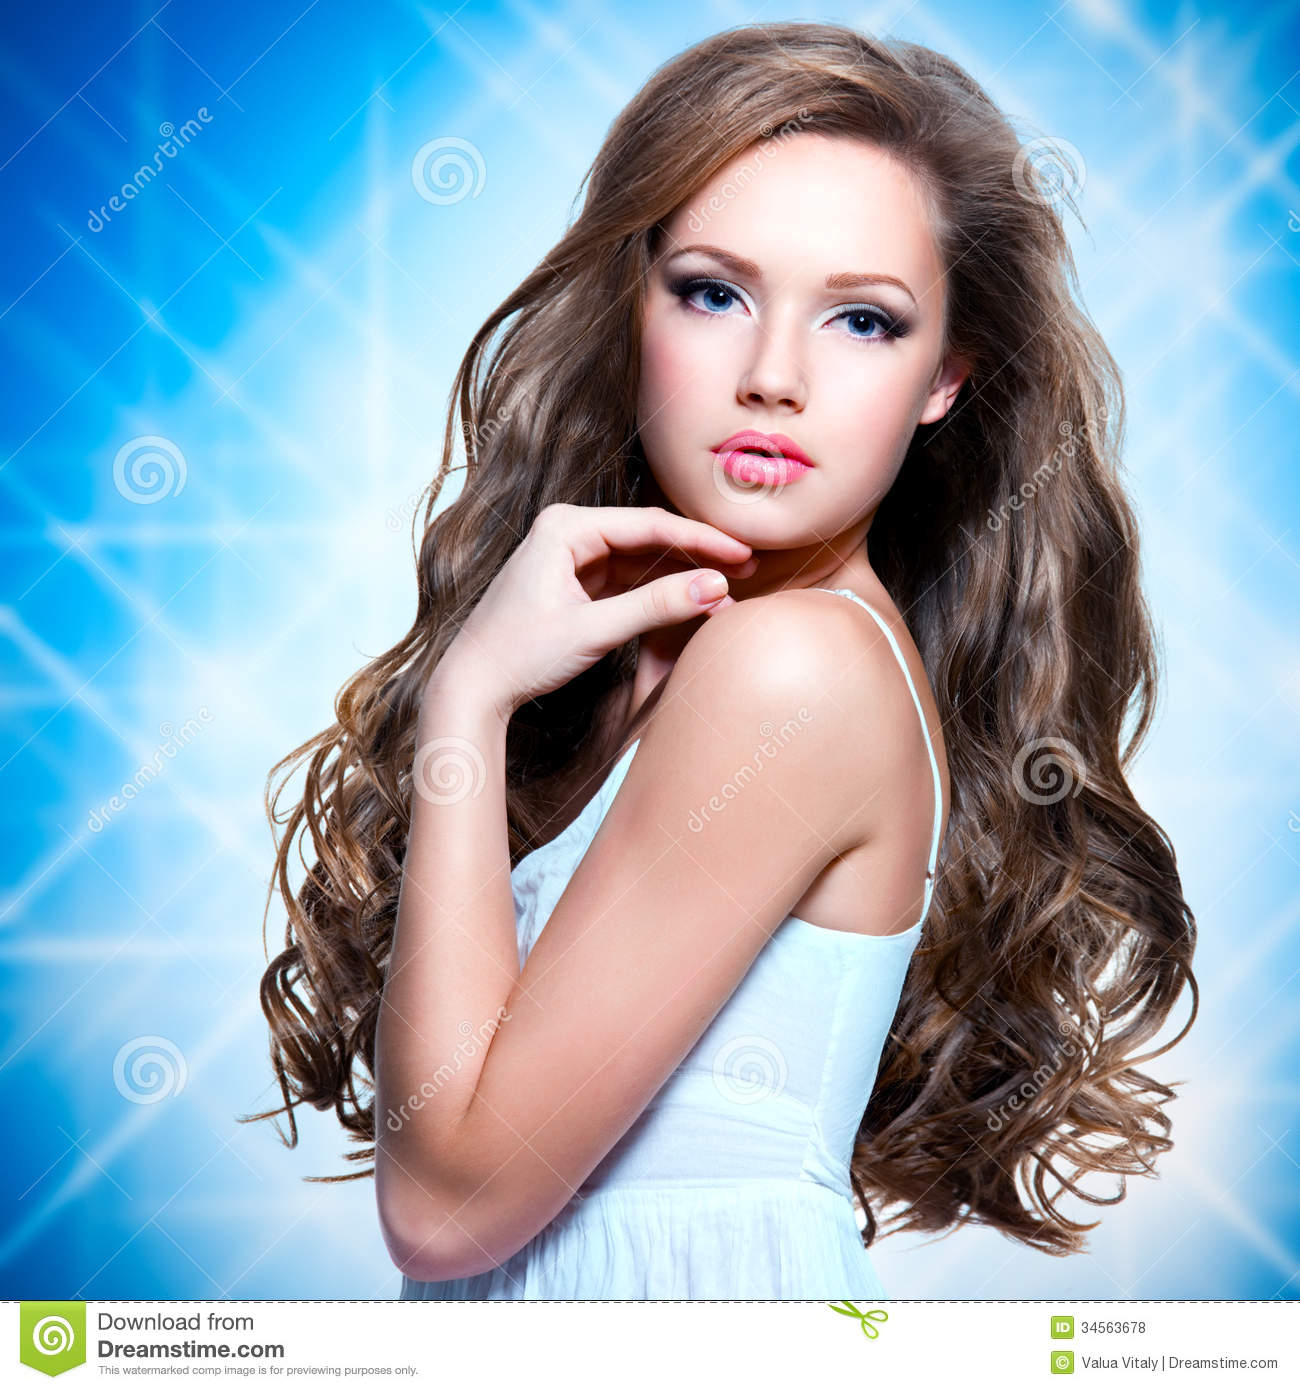 Portrait of the beautiful girl with long curly hairs